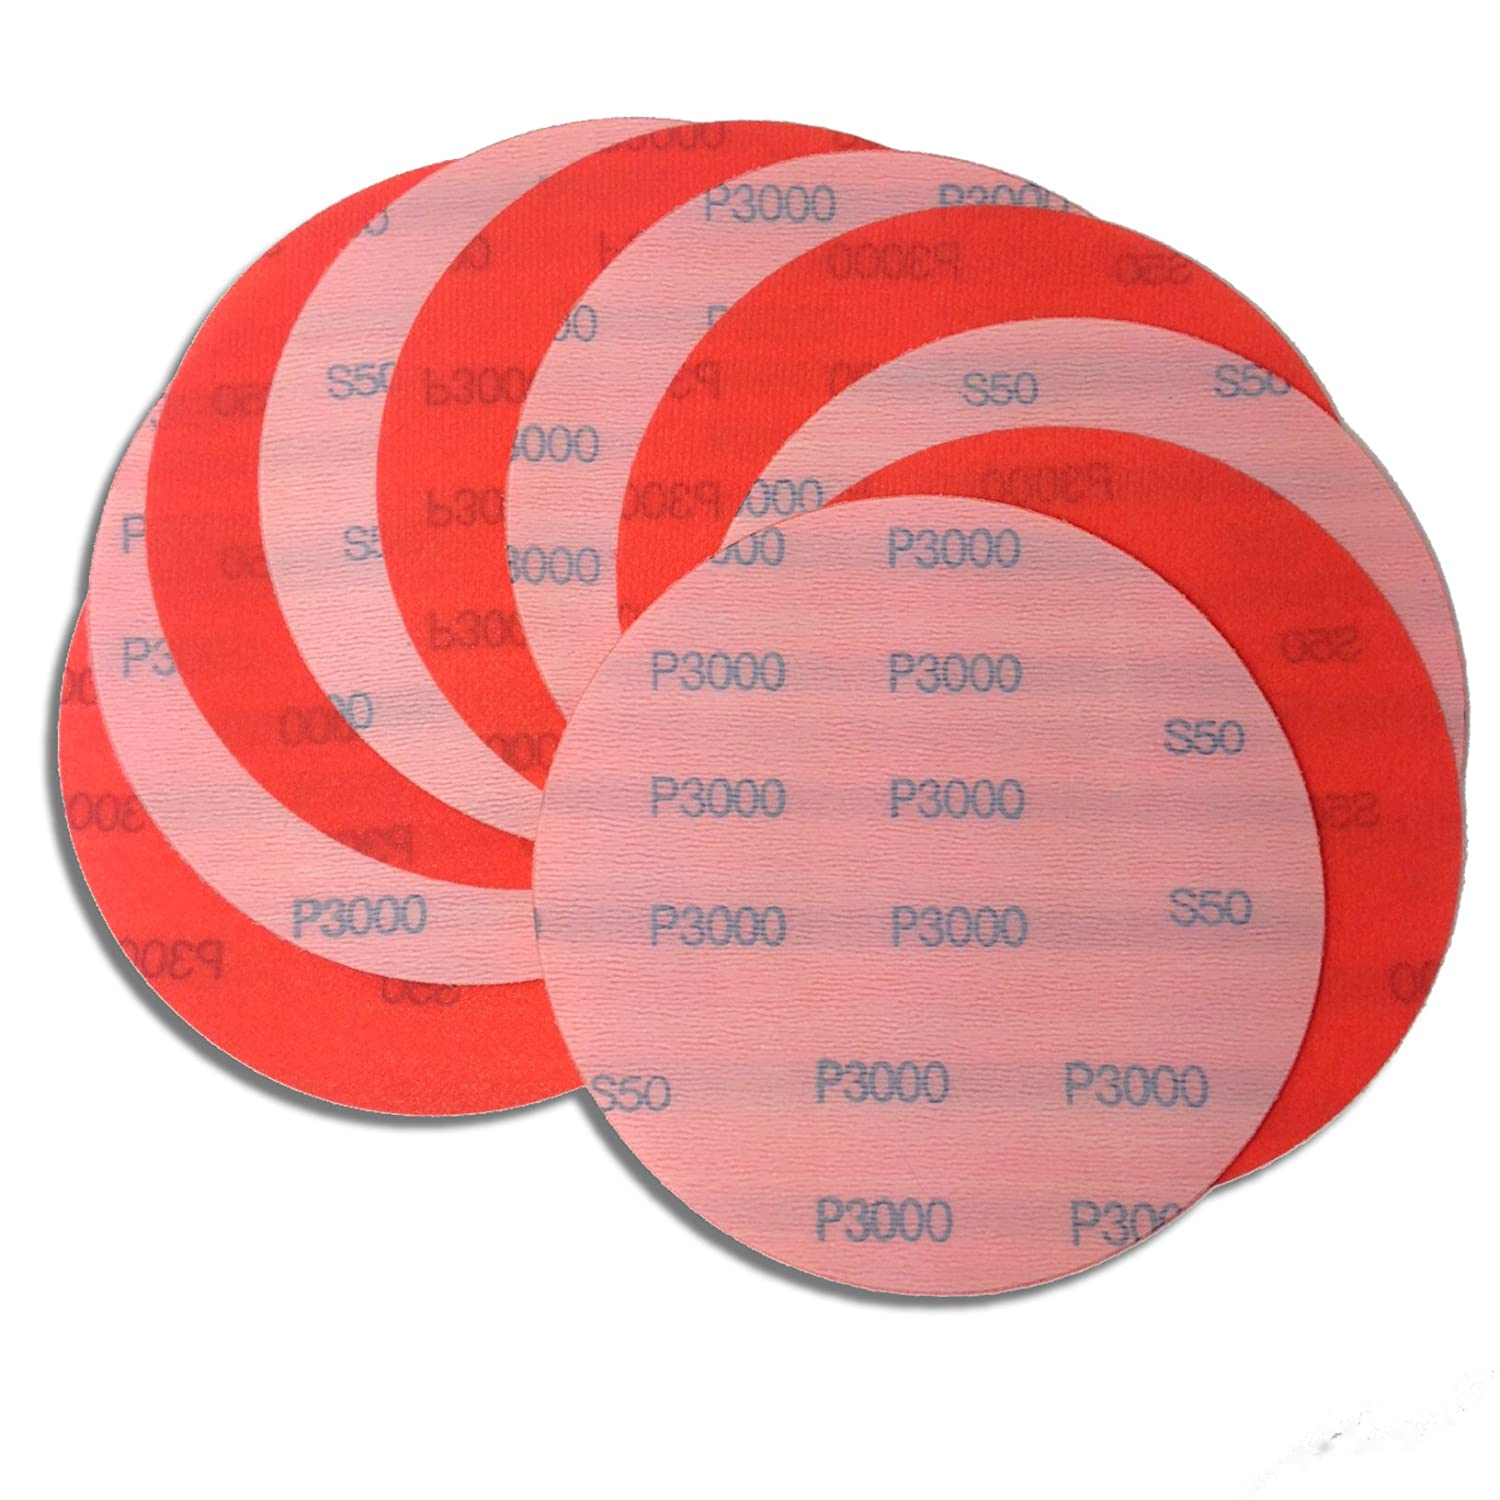 6 Inch 3000 Grit High Performance Hook and Loop Wet / Dry Auto Body Film Sanding Discs, 10 Pack